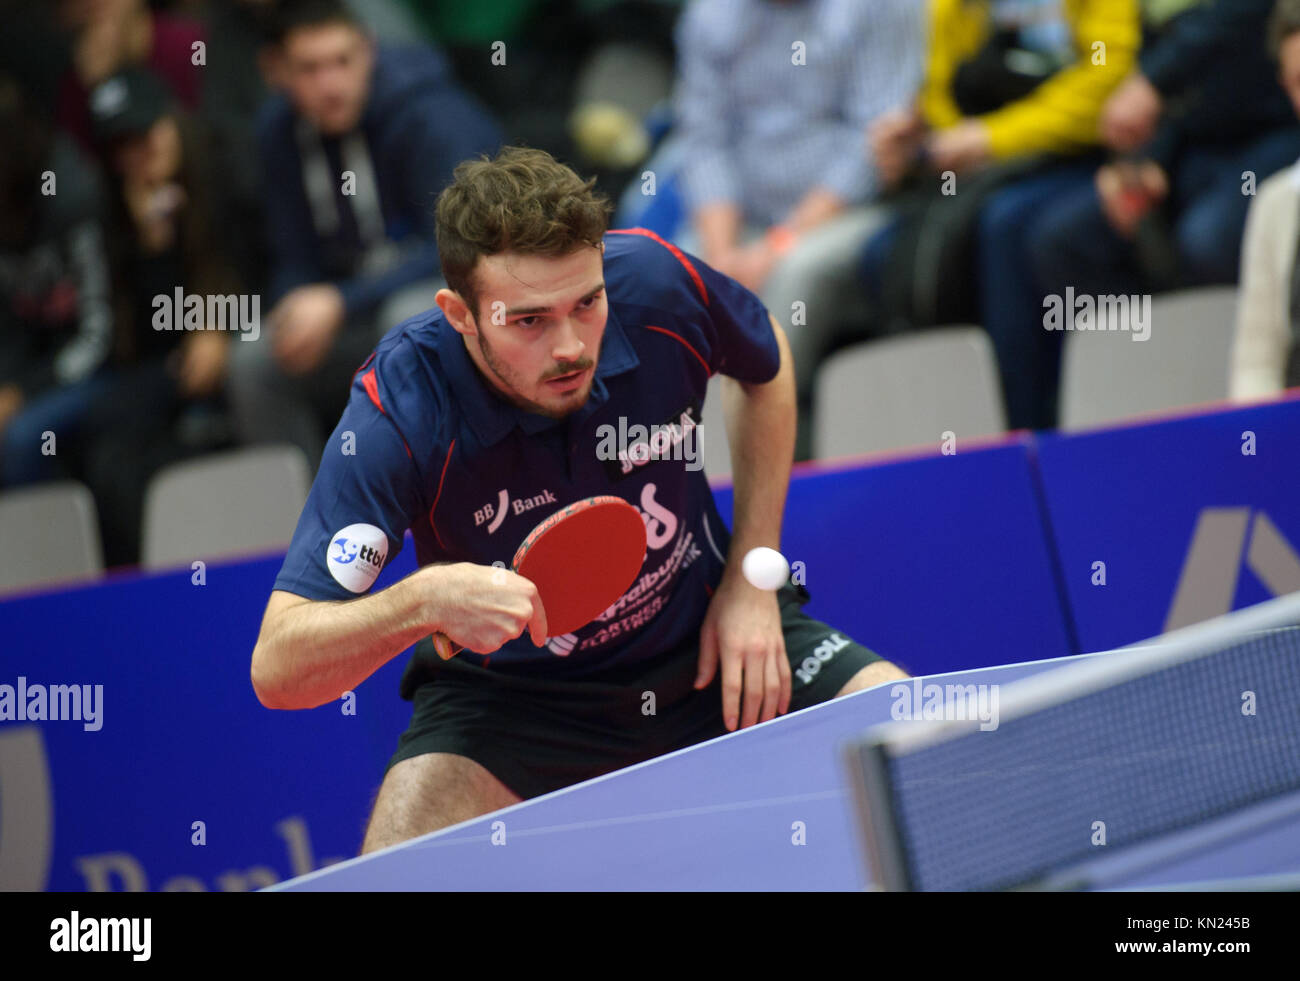 Germany. 10th Dec, 2017. Deutschland. 10th Dec, 2017. Sam Walker (Gruenwettersbach). GES/ Tischtennis/ 1. Bundesliga: - Stock Image